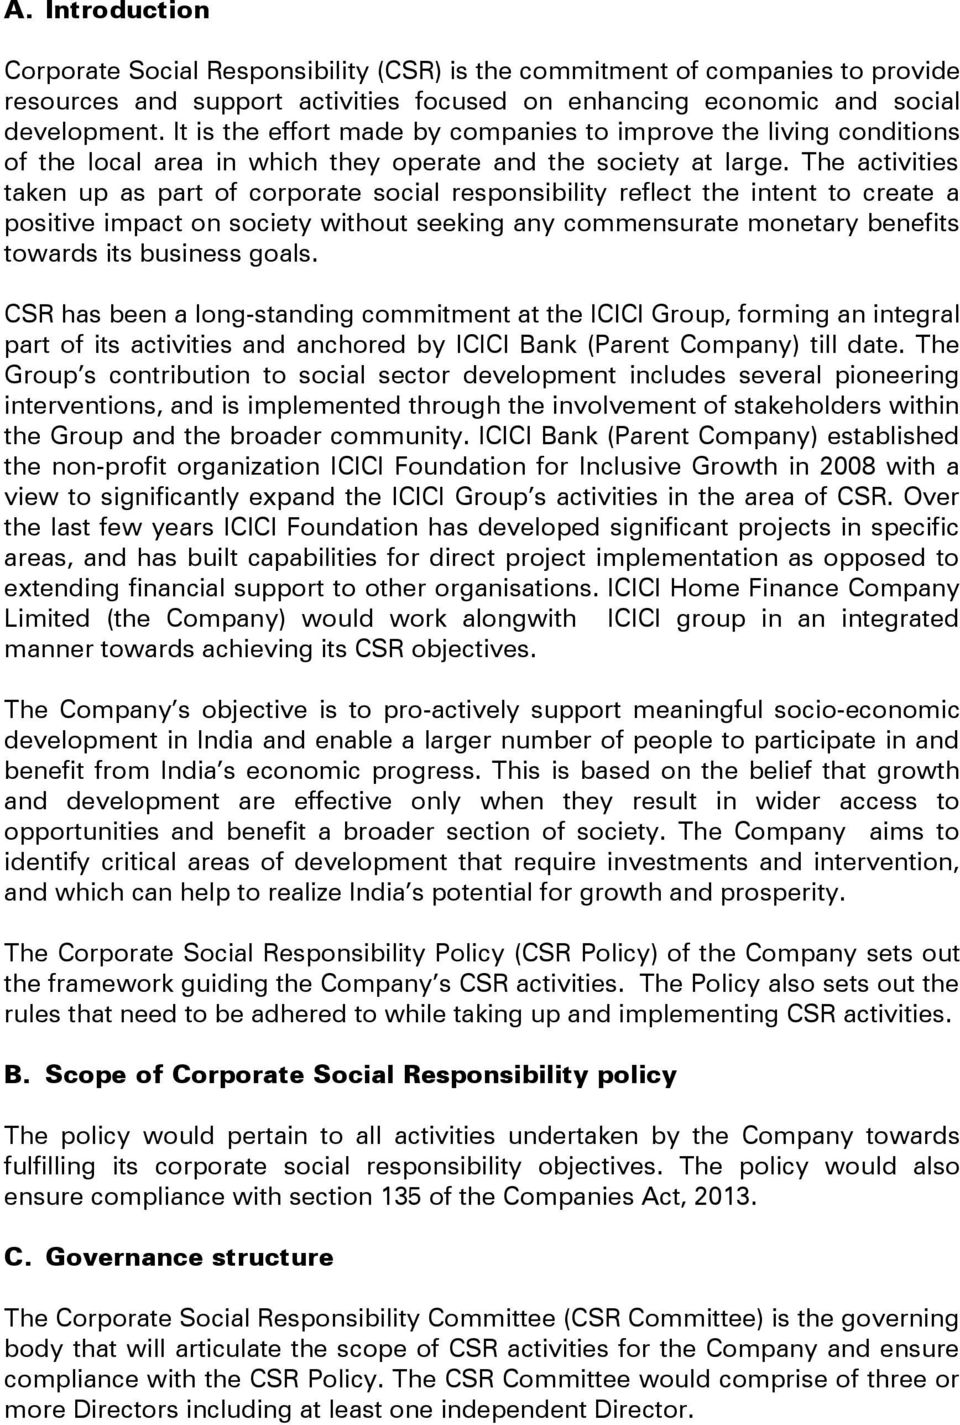 The activities taken up as part of corporate social responsibility reflect the intent to create a positive impact on society without seeking any commensurate monetary benefits towards its business